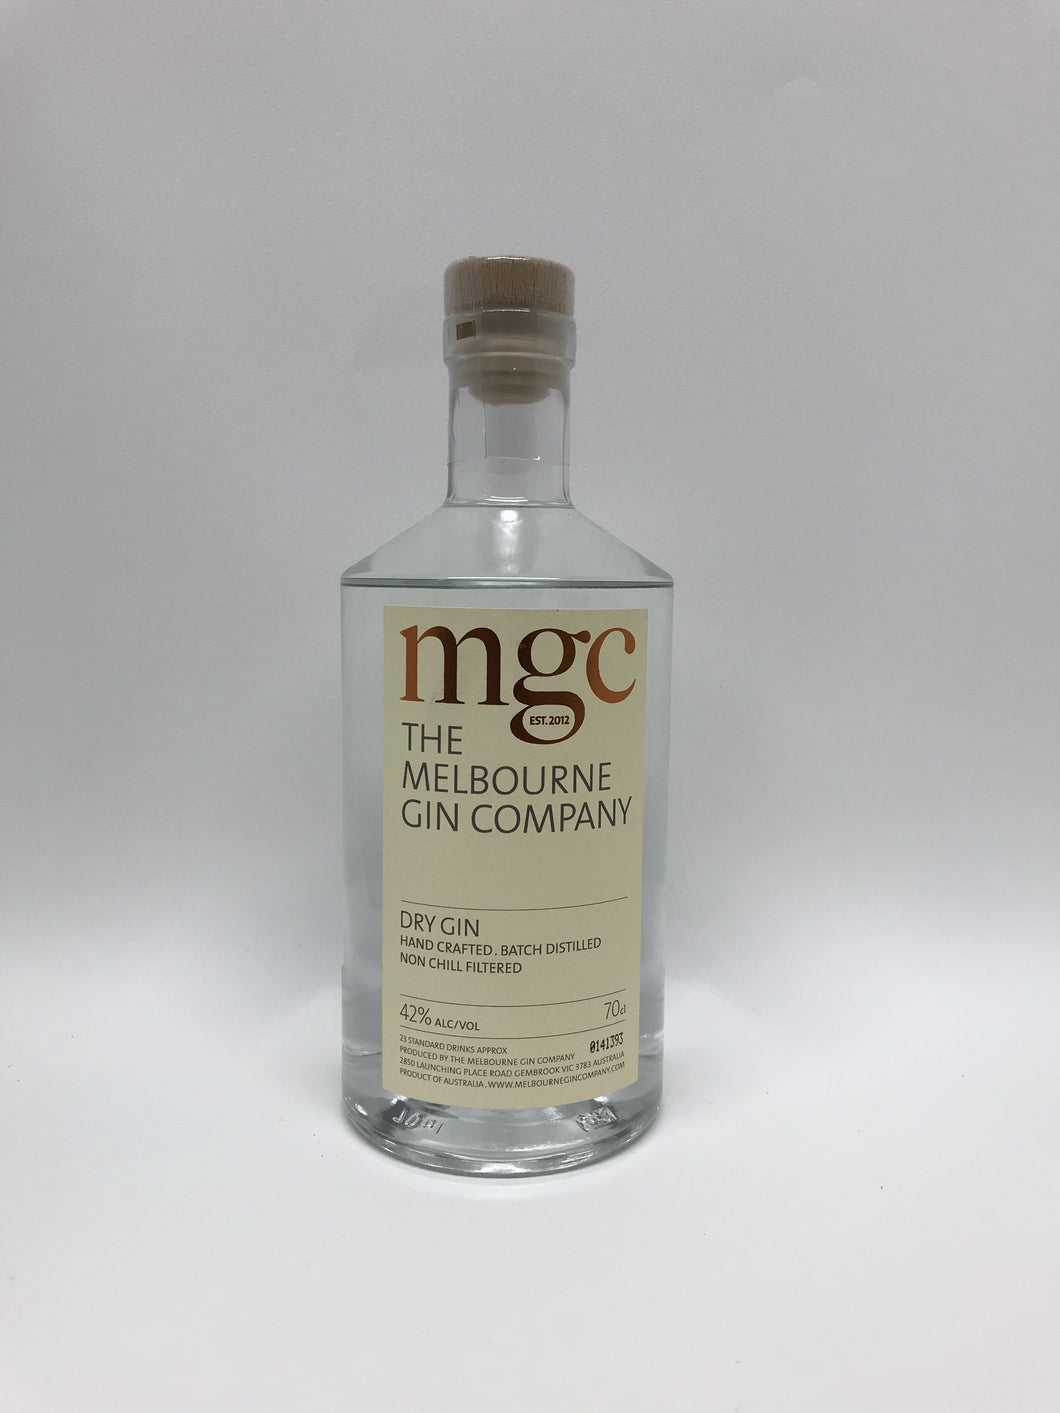 The Melbourne Gin Company (MGC) - Hand Crafted Dry Gin 700ml